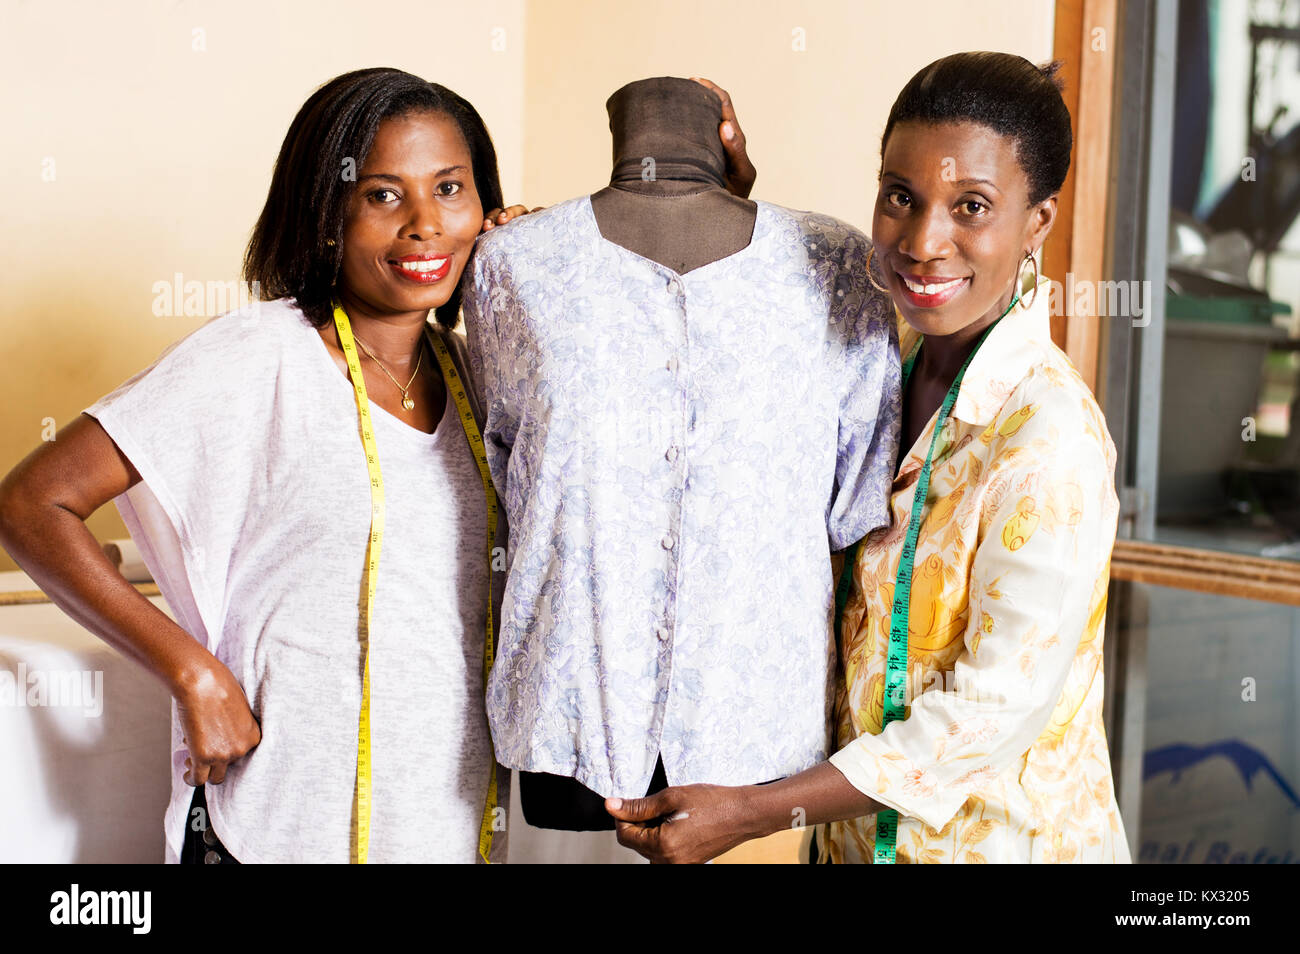 Two smiling seamstresses standing next to a mannequin in their studio. - Stock Image